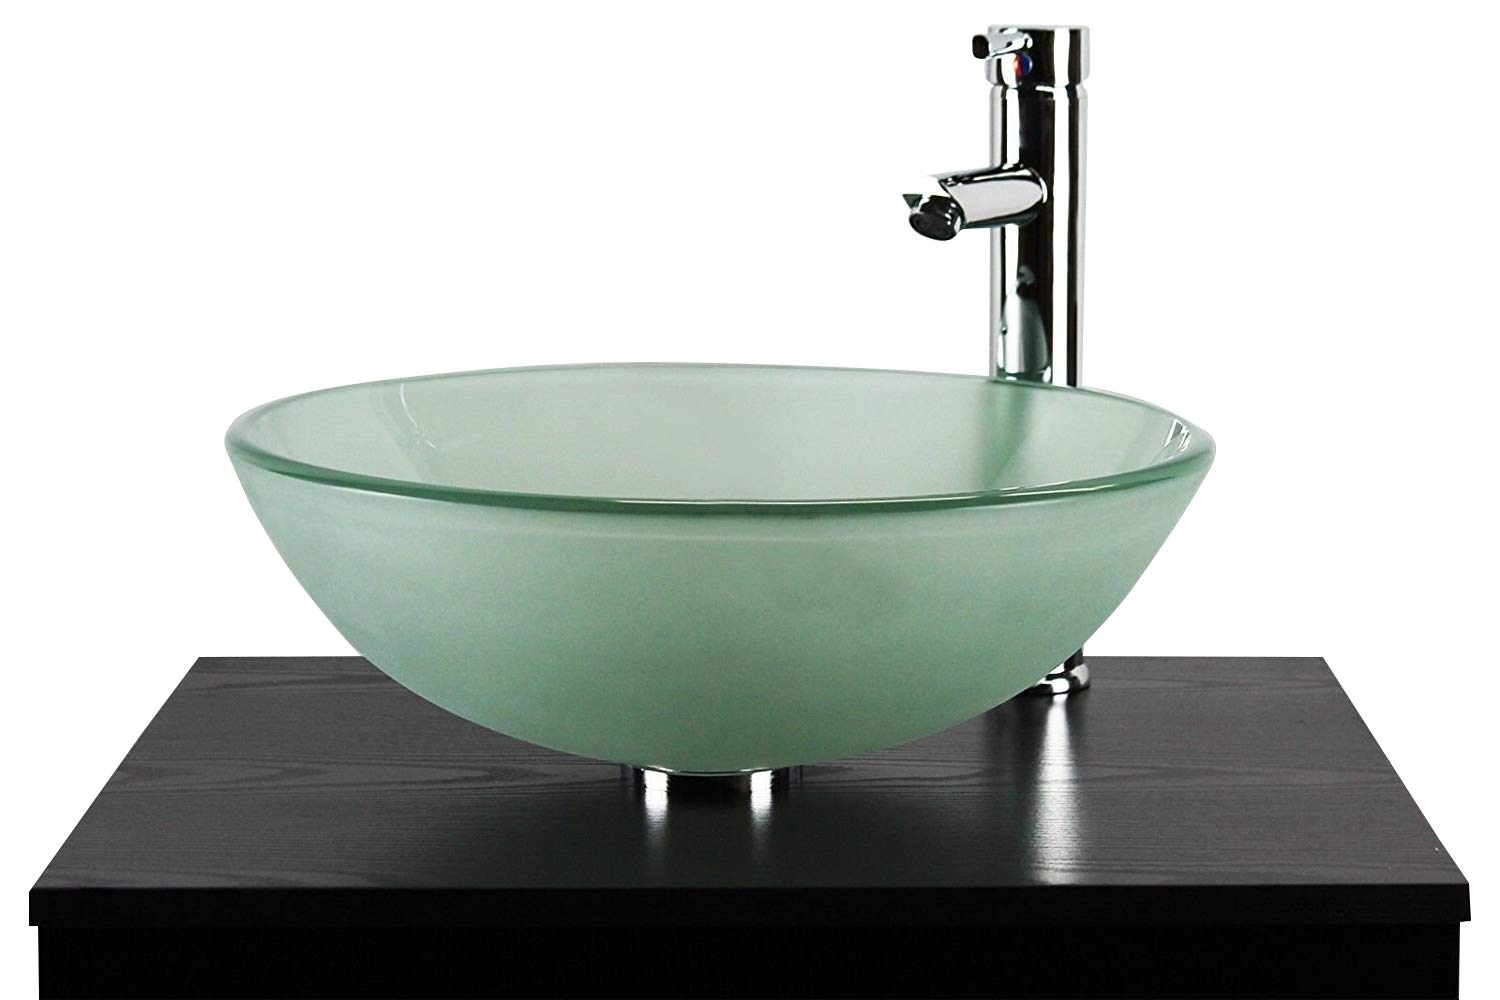 BATHROOM CLOAKROOM COUNTERTOP FROSTED GLASS BOWL BASIN SINK